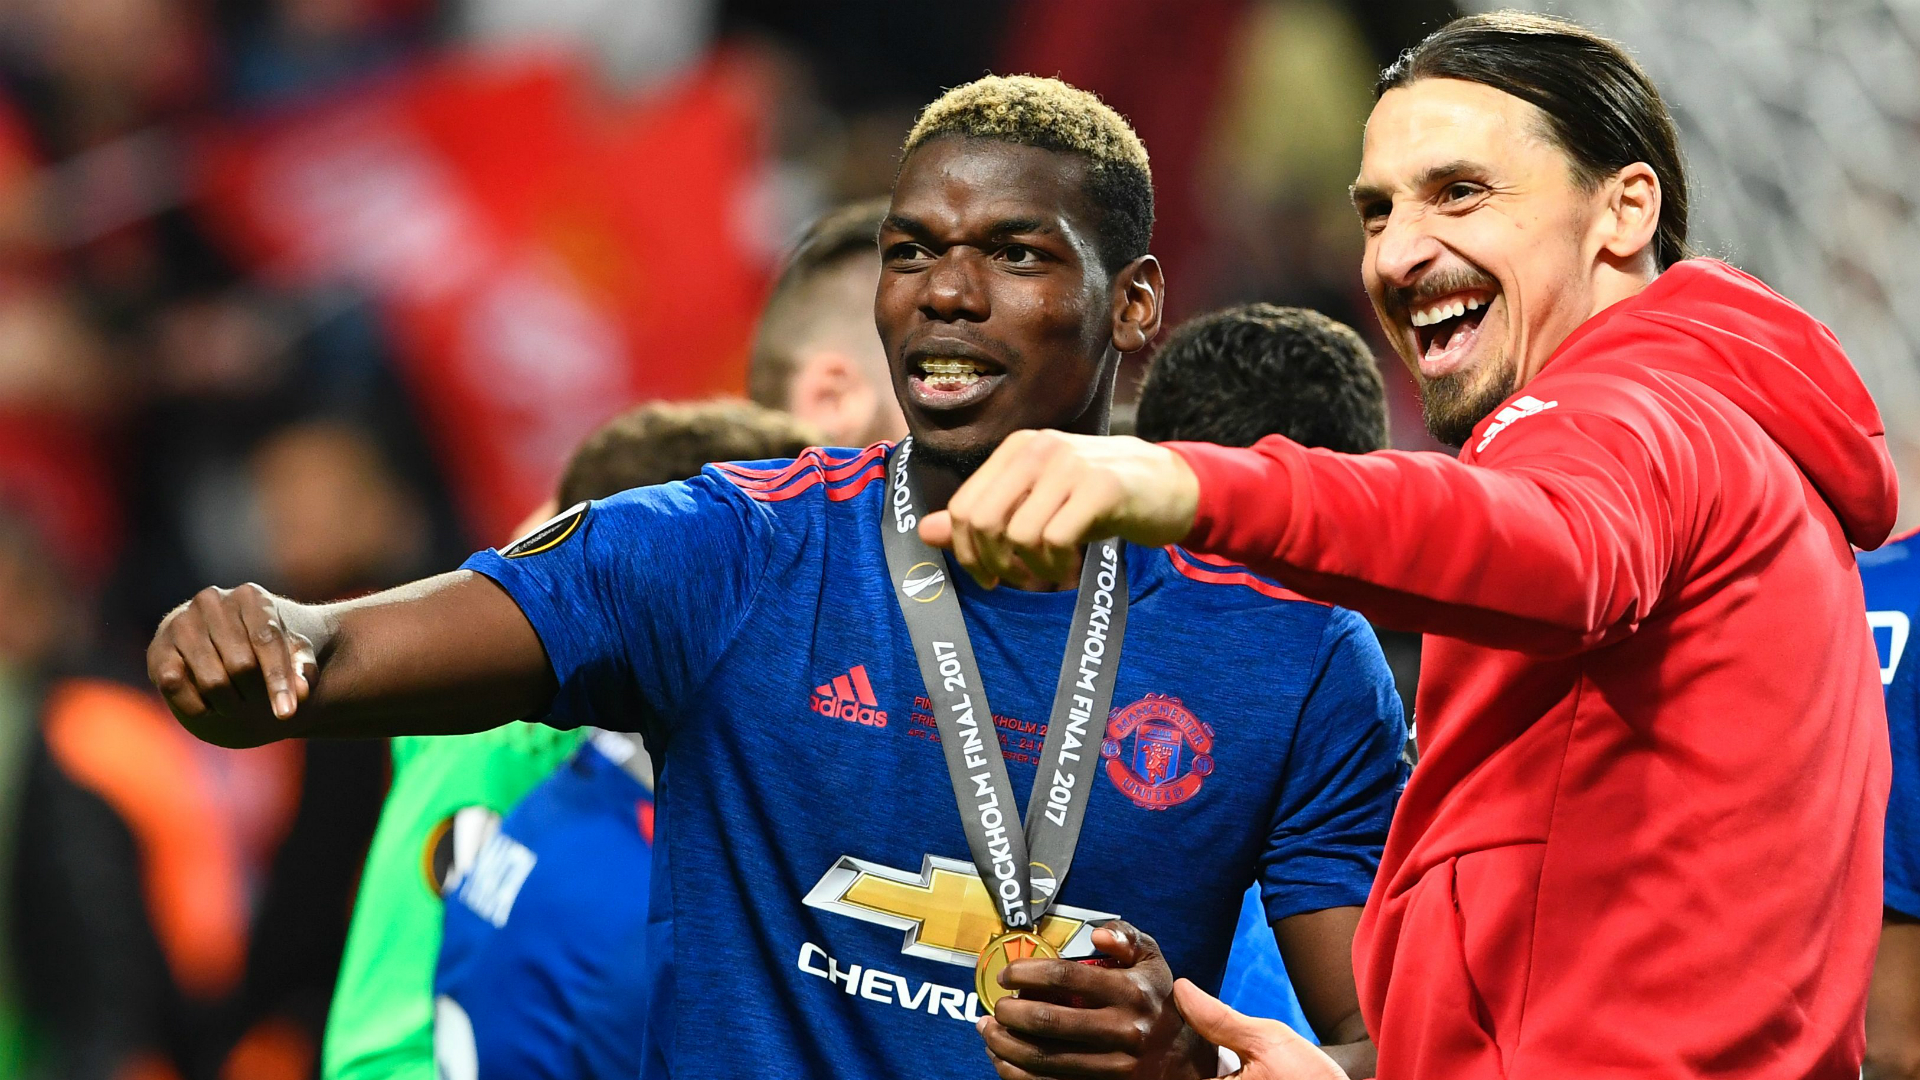 http://images.performgroup.com/di/library/group_content_la/b6/27/paul-pogba-zlatan-ibrahimovic-ajax-v-manchester-united-uefa-europa-league-final-24052017_1qabzwwd6v5d61nr5q8wp16wsu.jpg